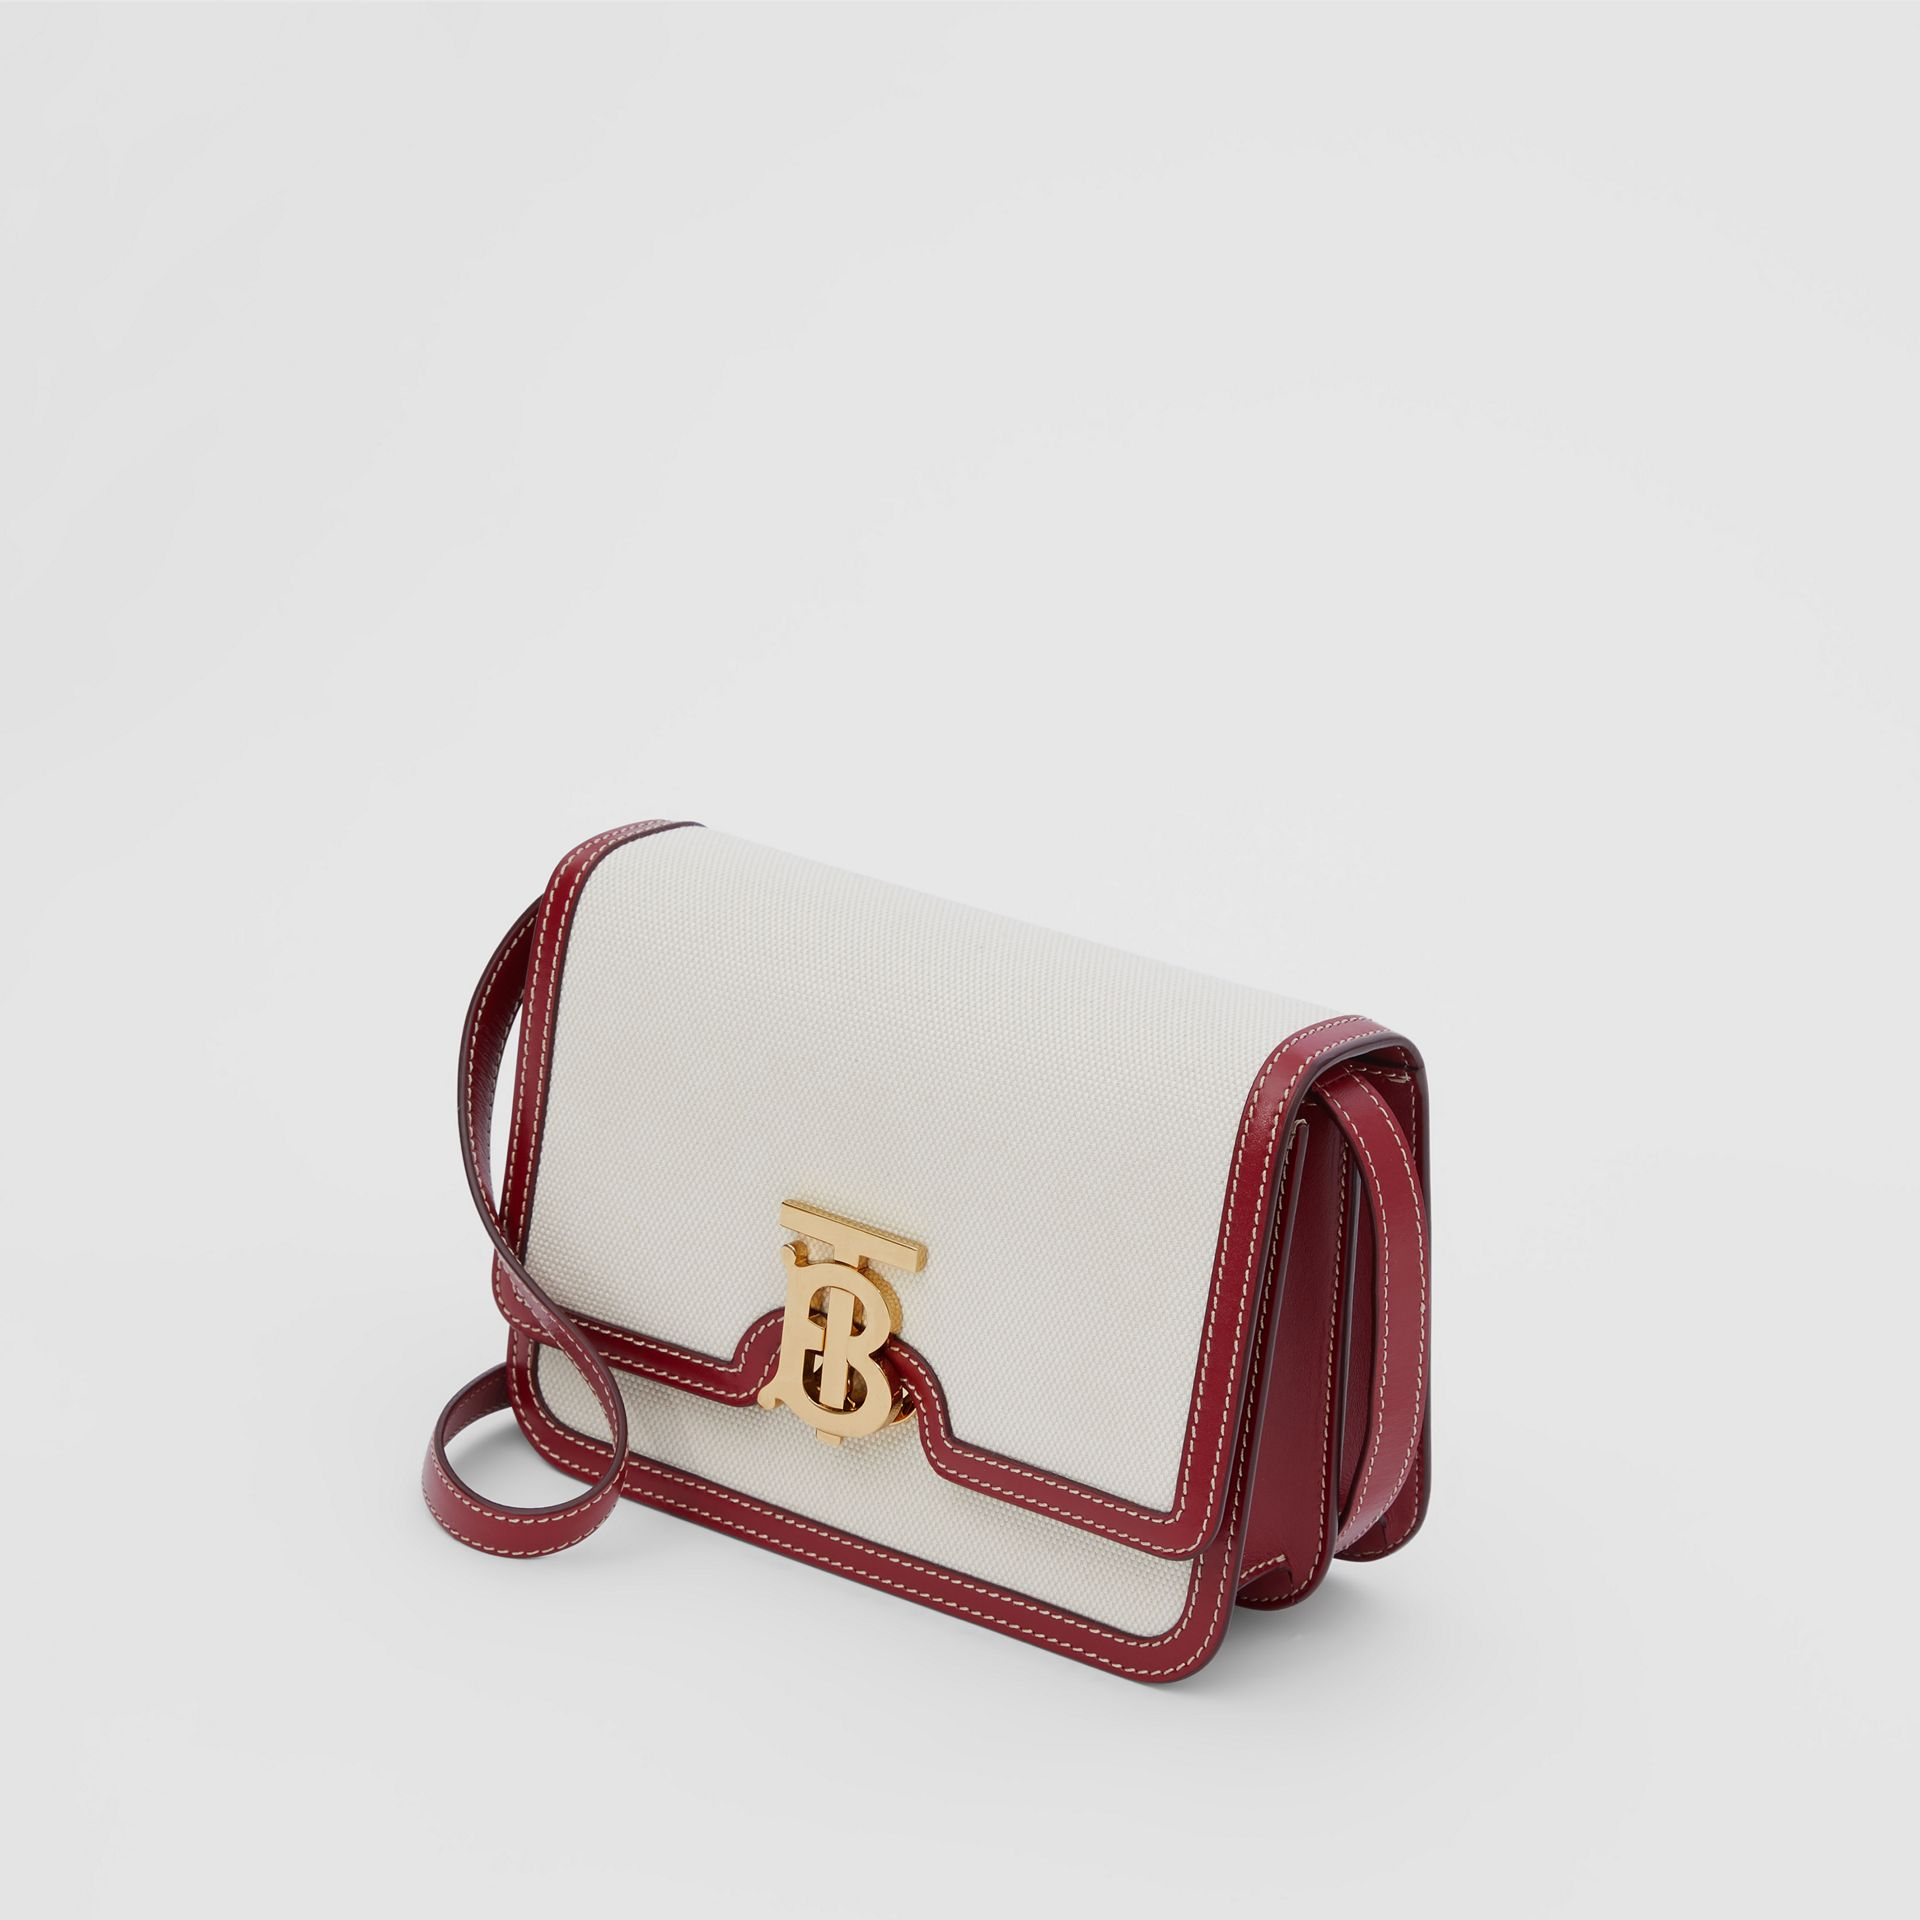 Small Two-tone Canvas and Leather TB Bag in Natural/dark Carmine - Women | Burberry Hong Kong S.A.R - gallery image 2